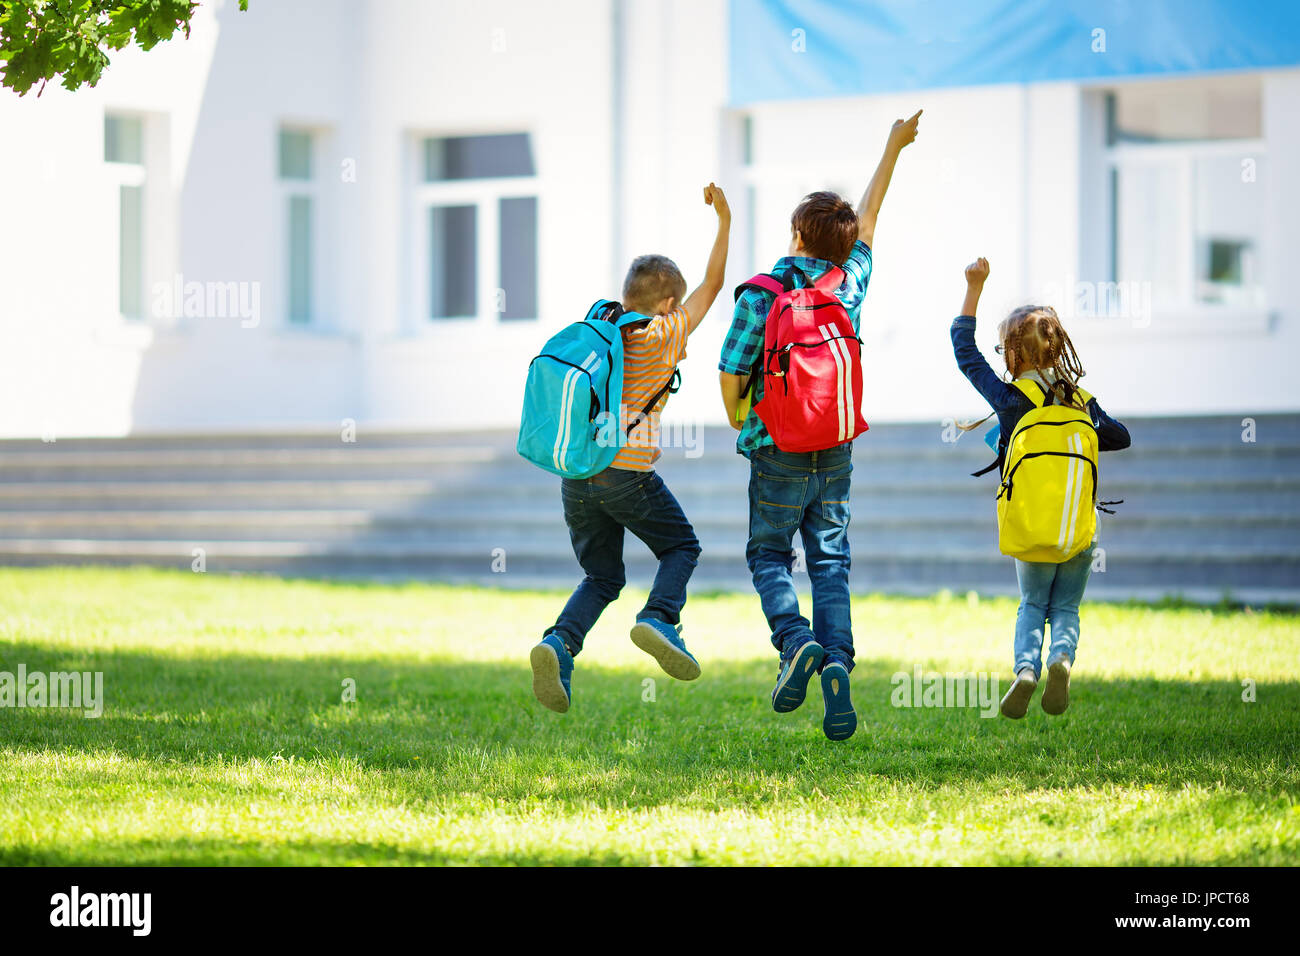 Children with rucksacks jumping in the park near school. Pupils with books and backpacks outdoors - Stock Image